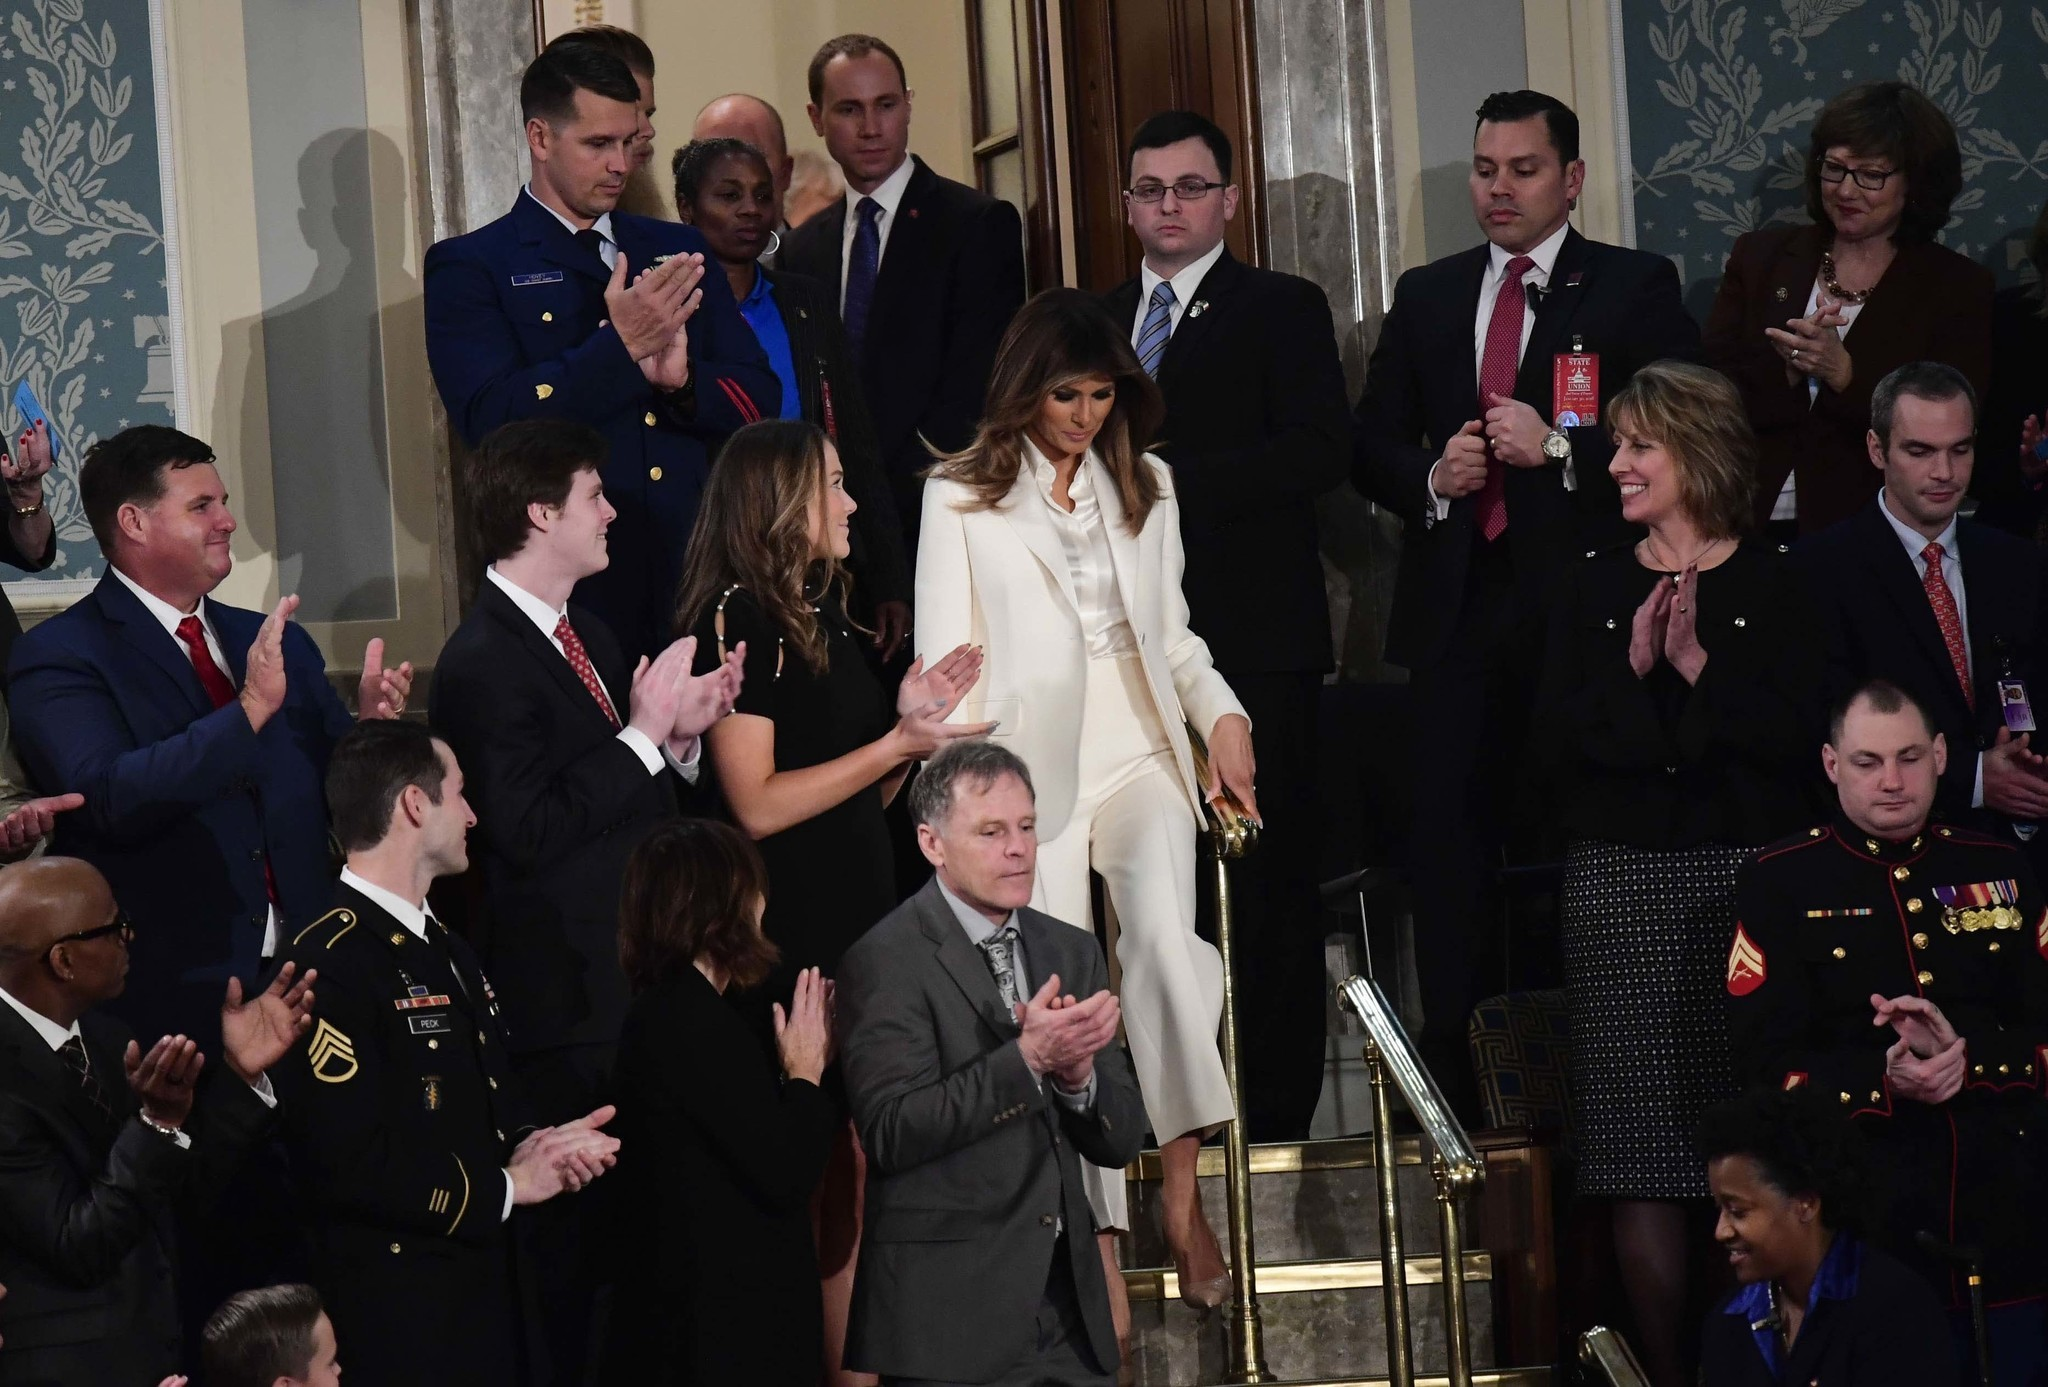 After a month out of view, Melania Trump reemerges for State of the Union - Chicago ...2048 x 1387